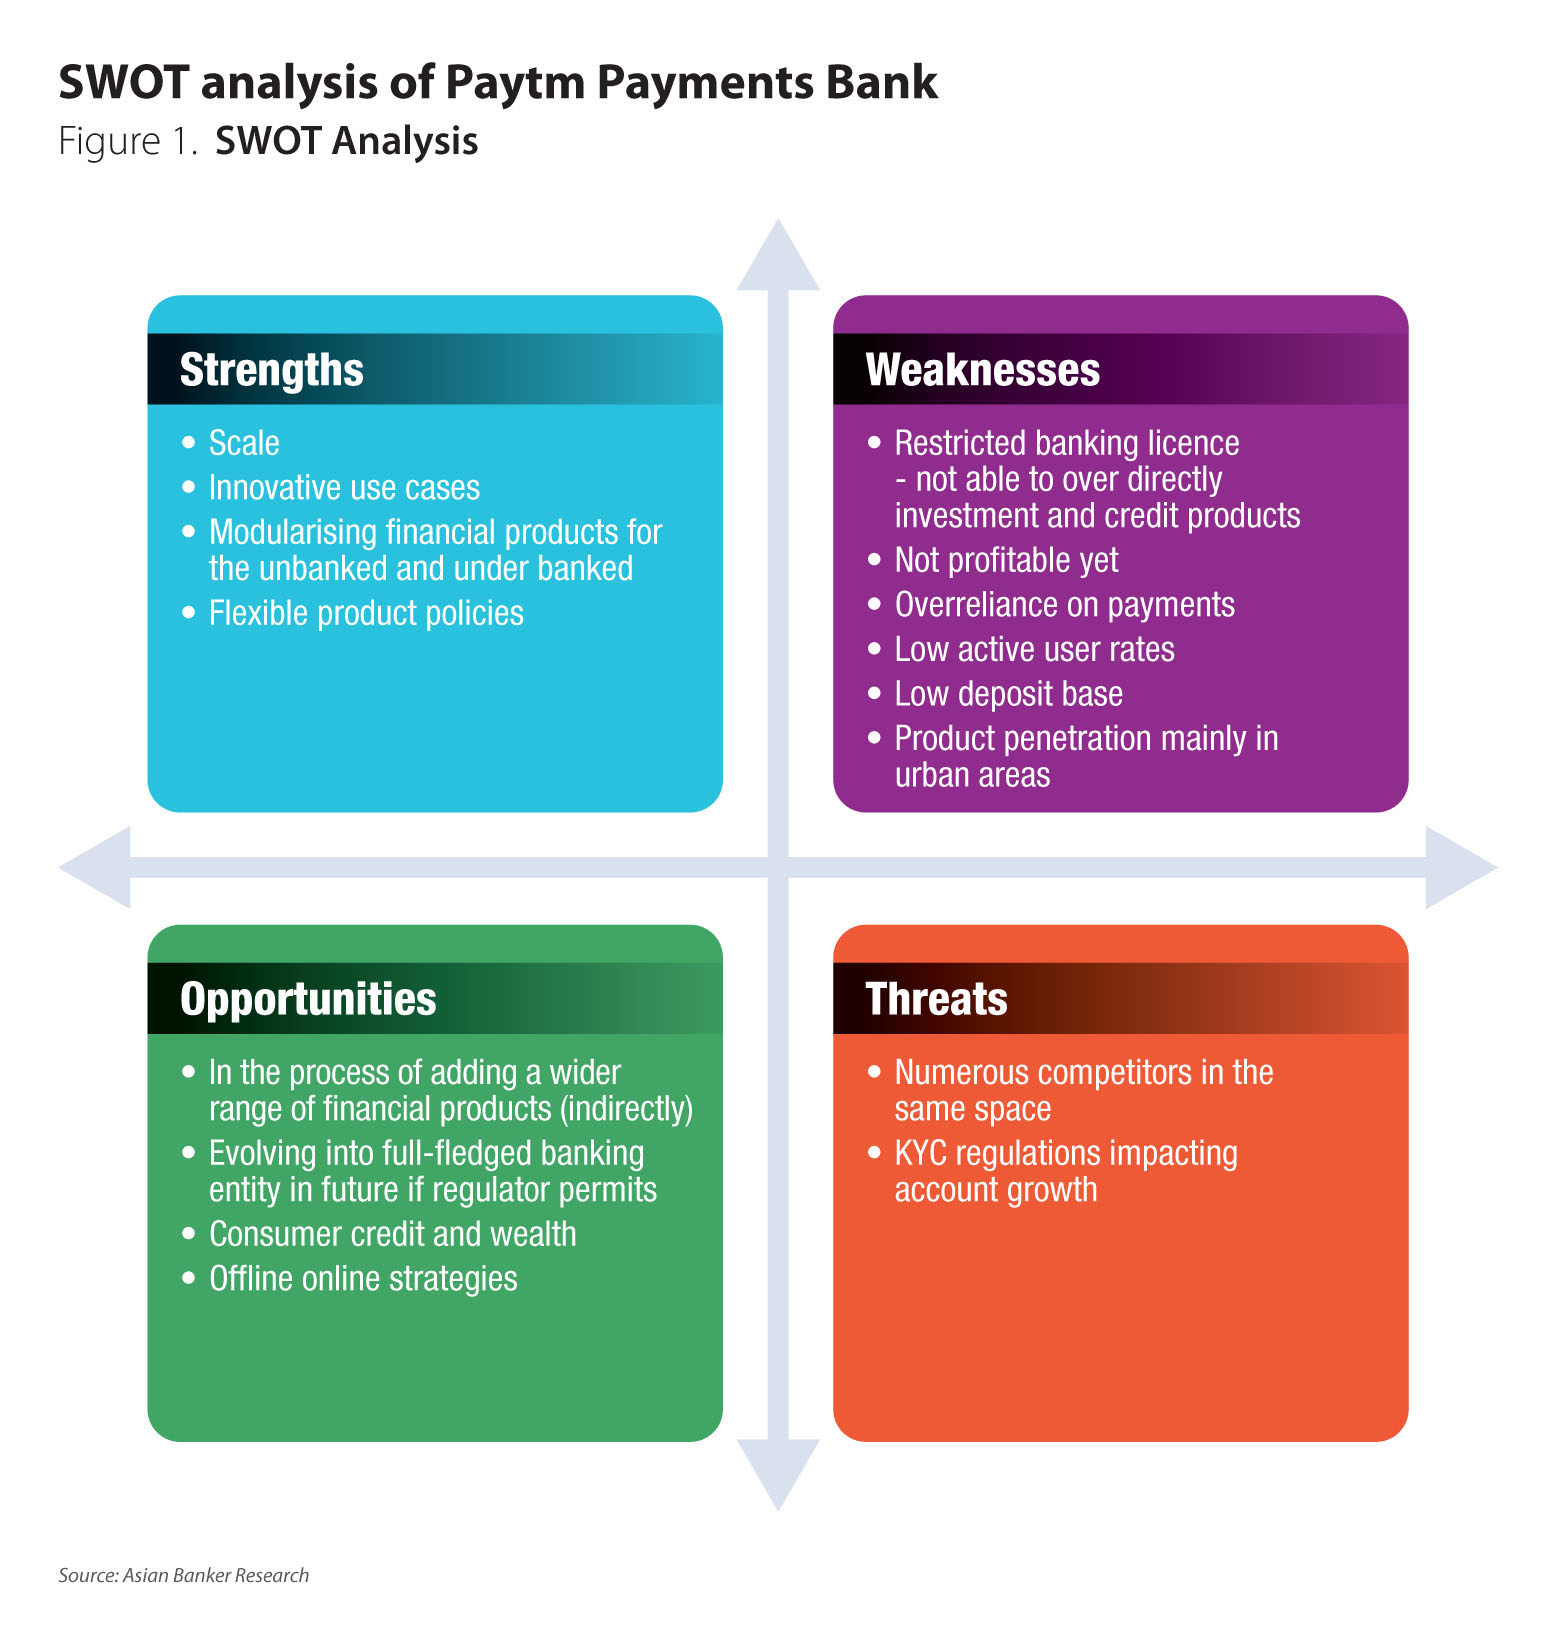 Paytm Payments Bank's route to profitability - The Asian Banker